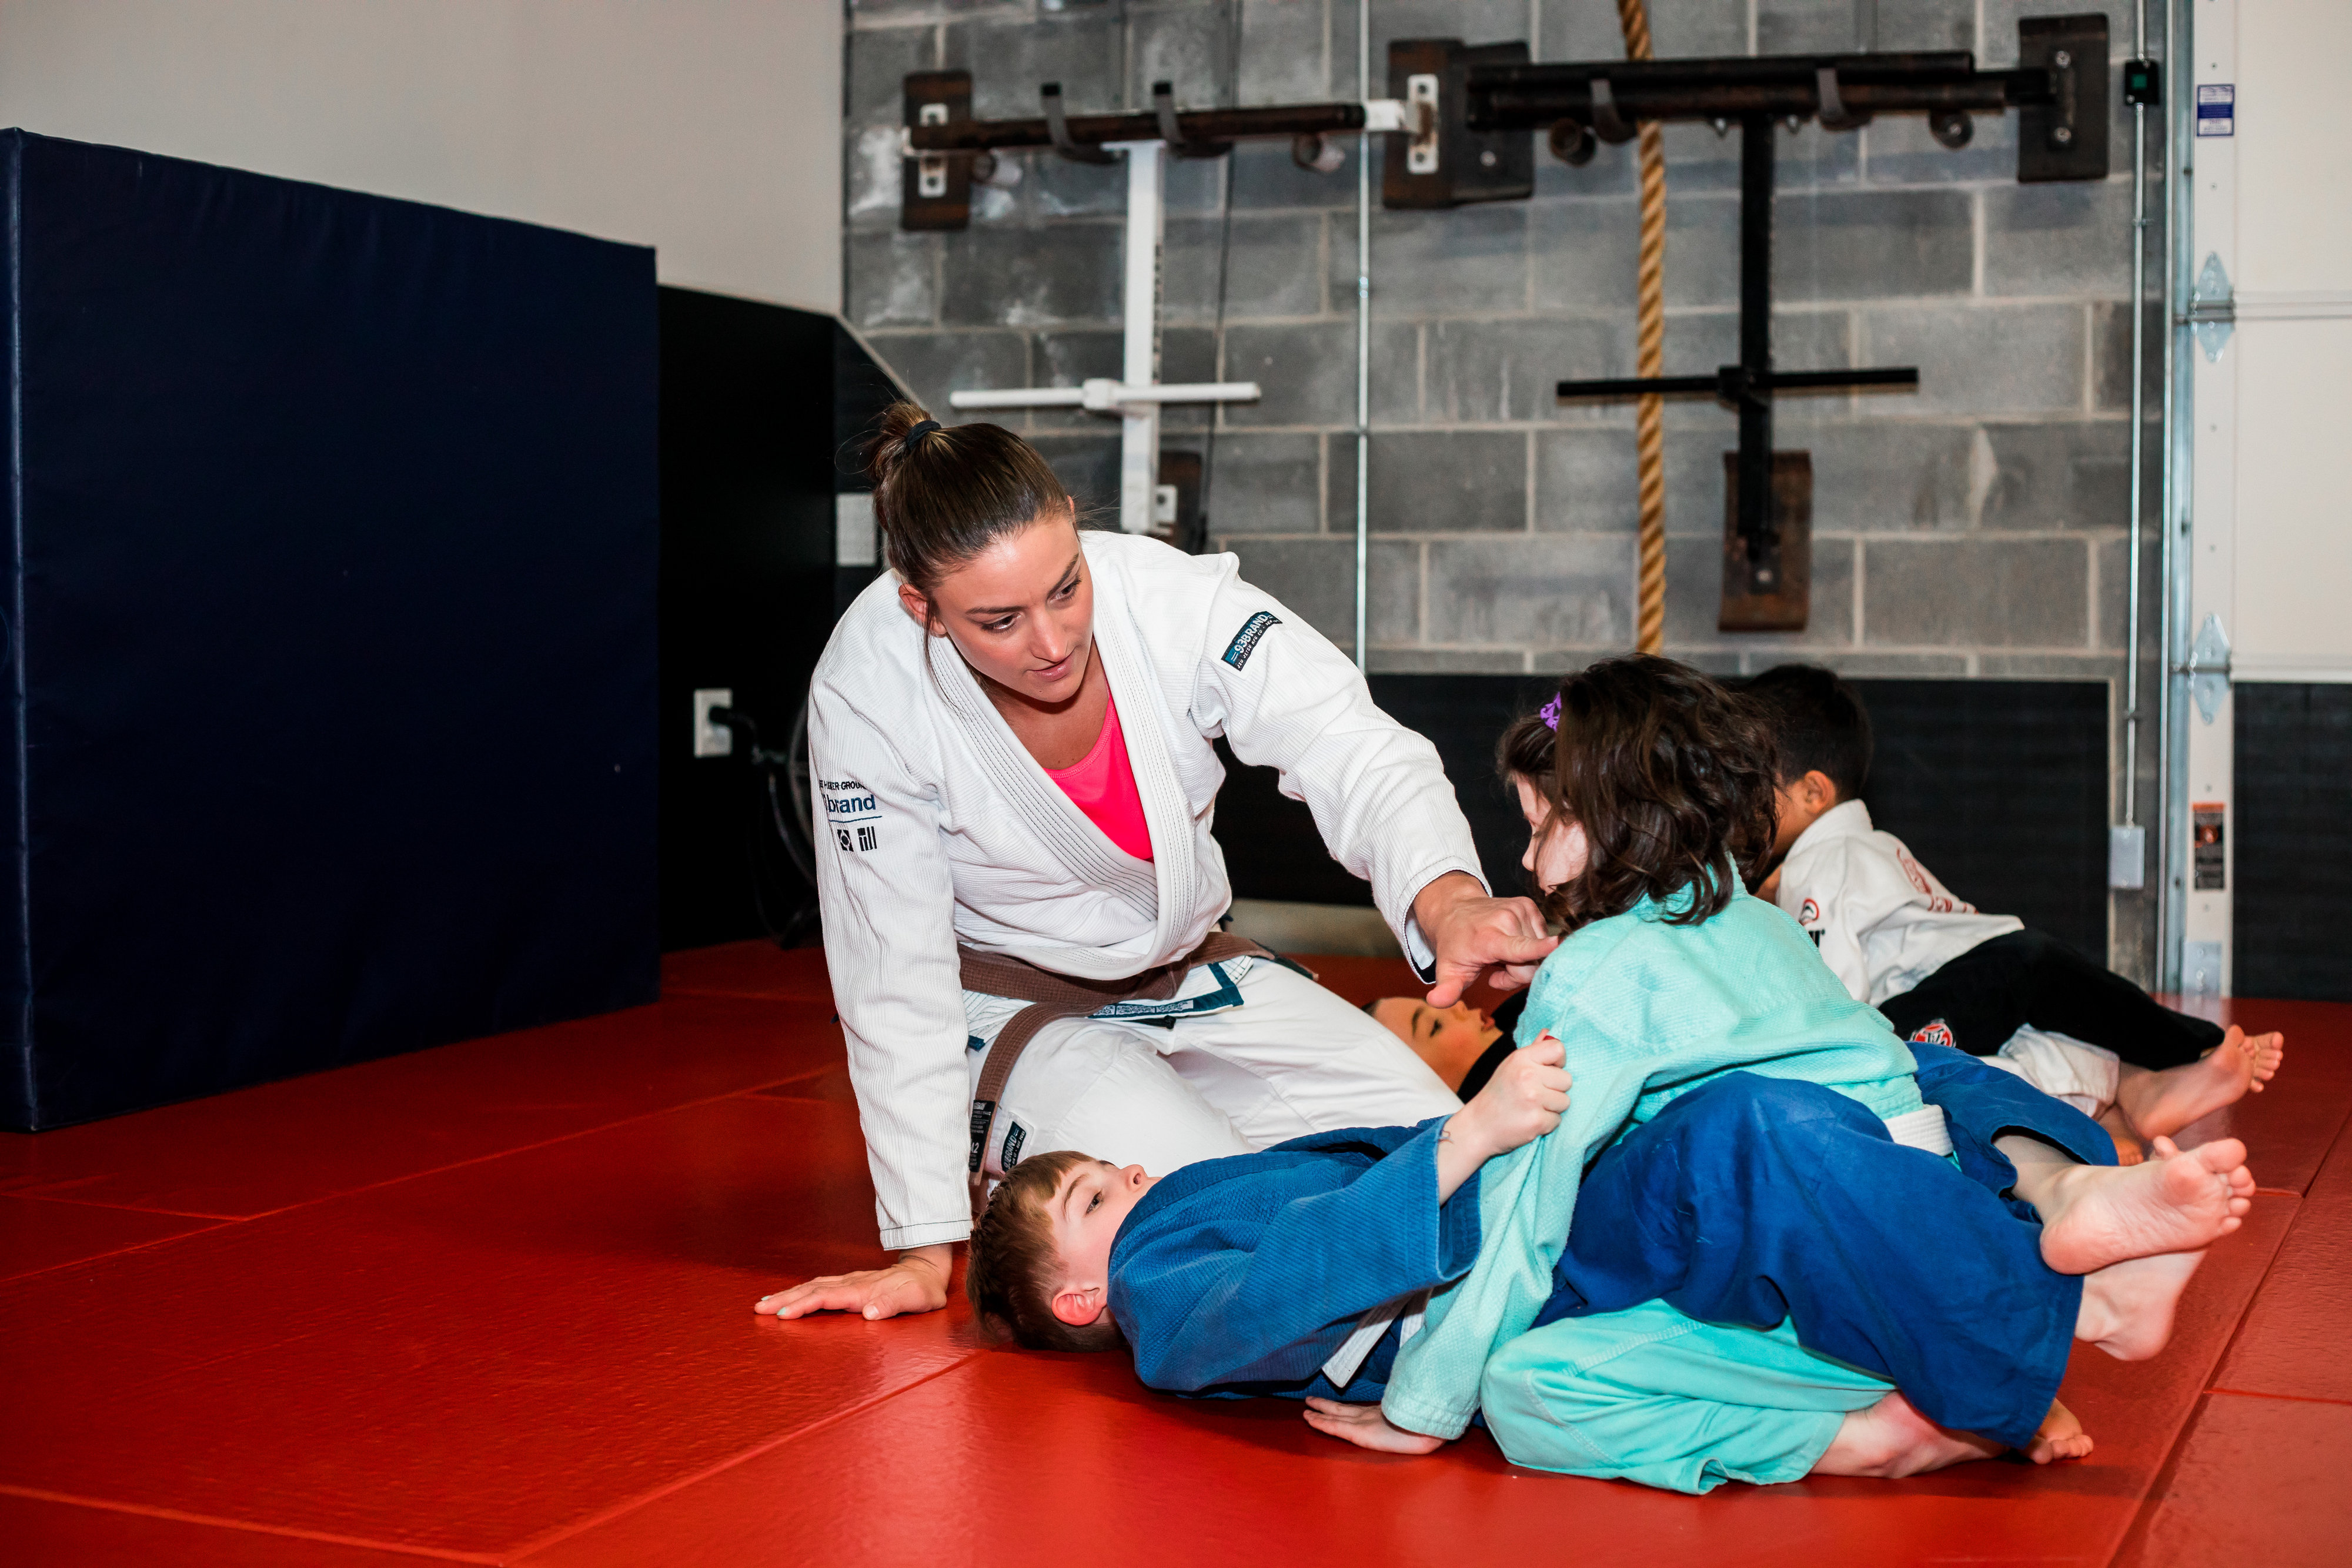 Practicing BJJ with Coach Michelle Welti at Dominion BJJ